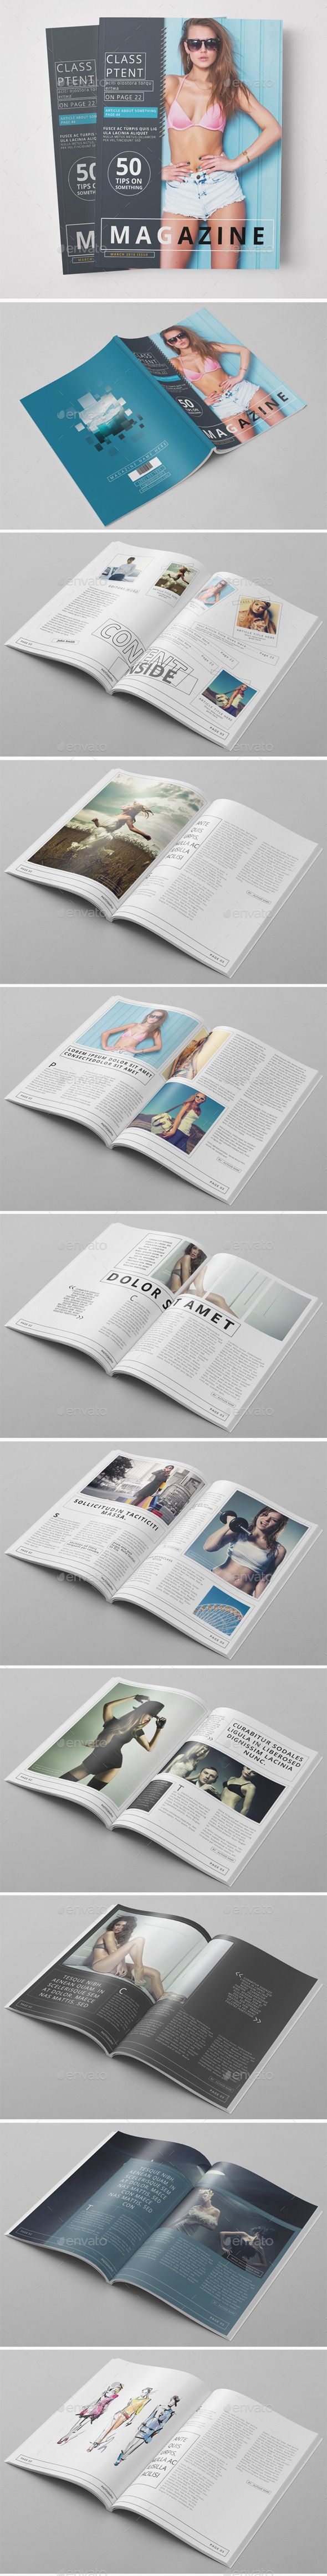 Fashion Magazine 02 by pmvch 20 Pages Fashion Magazine Template 20 Pages Magazine with Minimal & Professional Design. Fully layered PSD files and very easy to